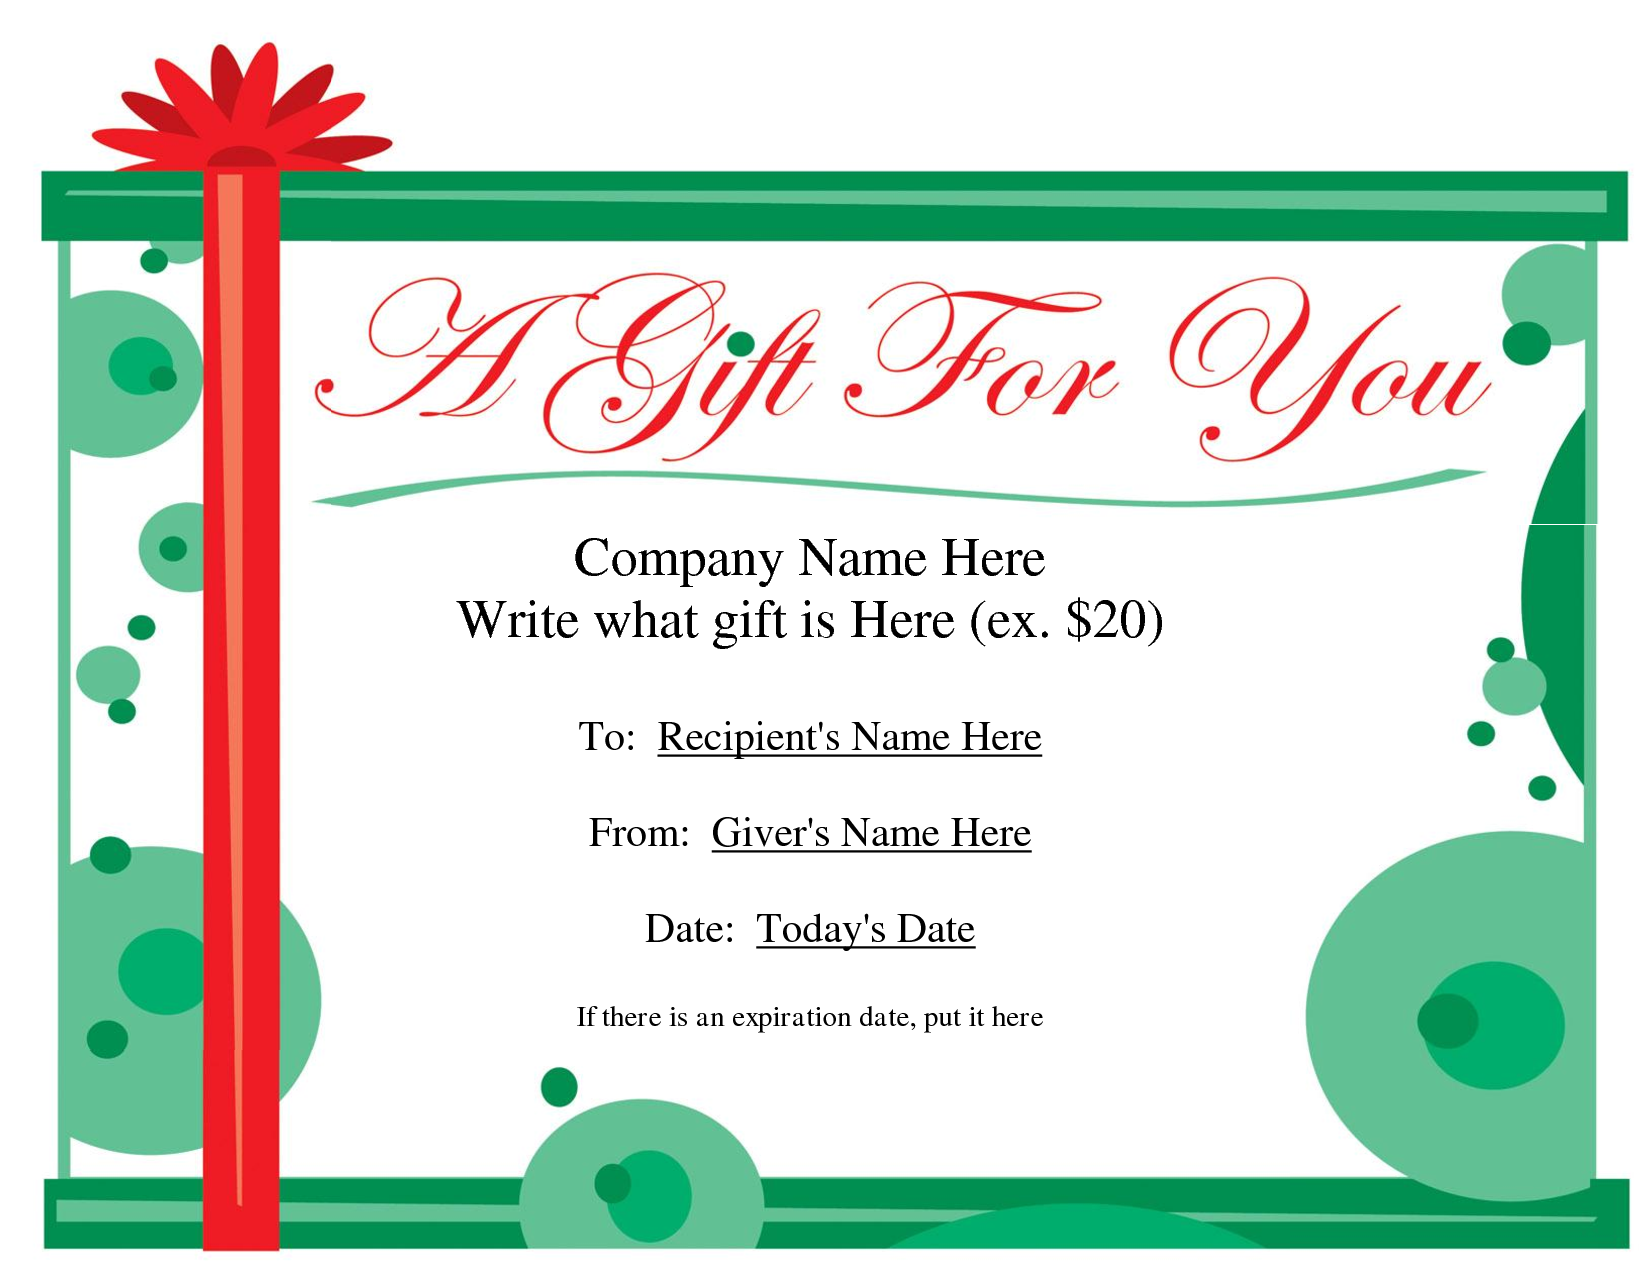 printable gift certificates template  Best 25  Free printable gift certificates ideas on Pinterest ...